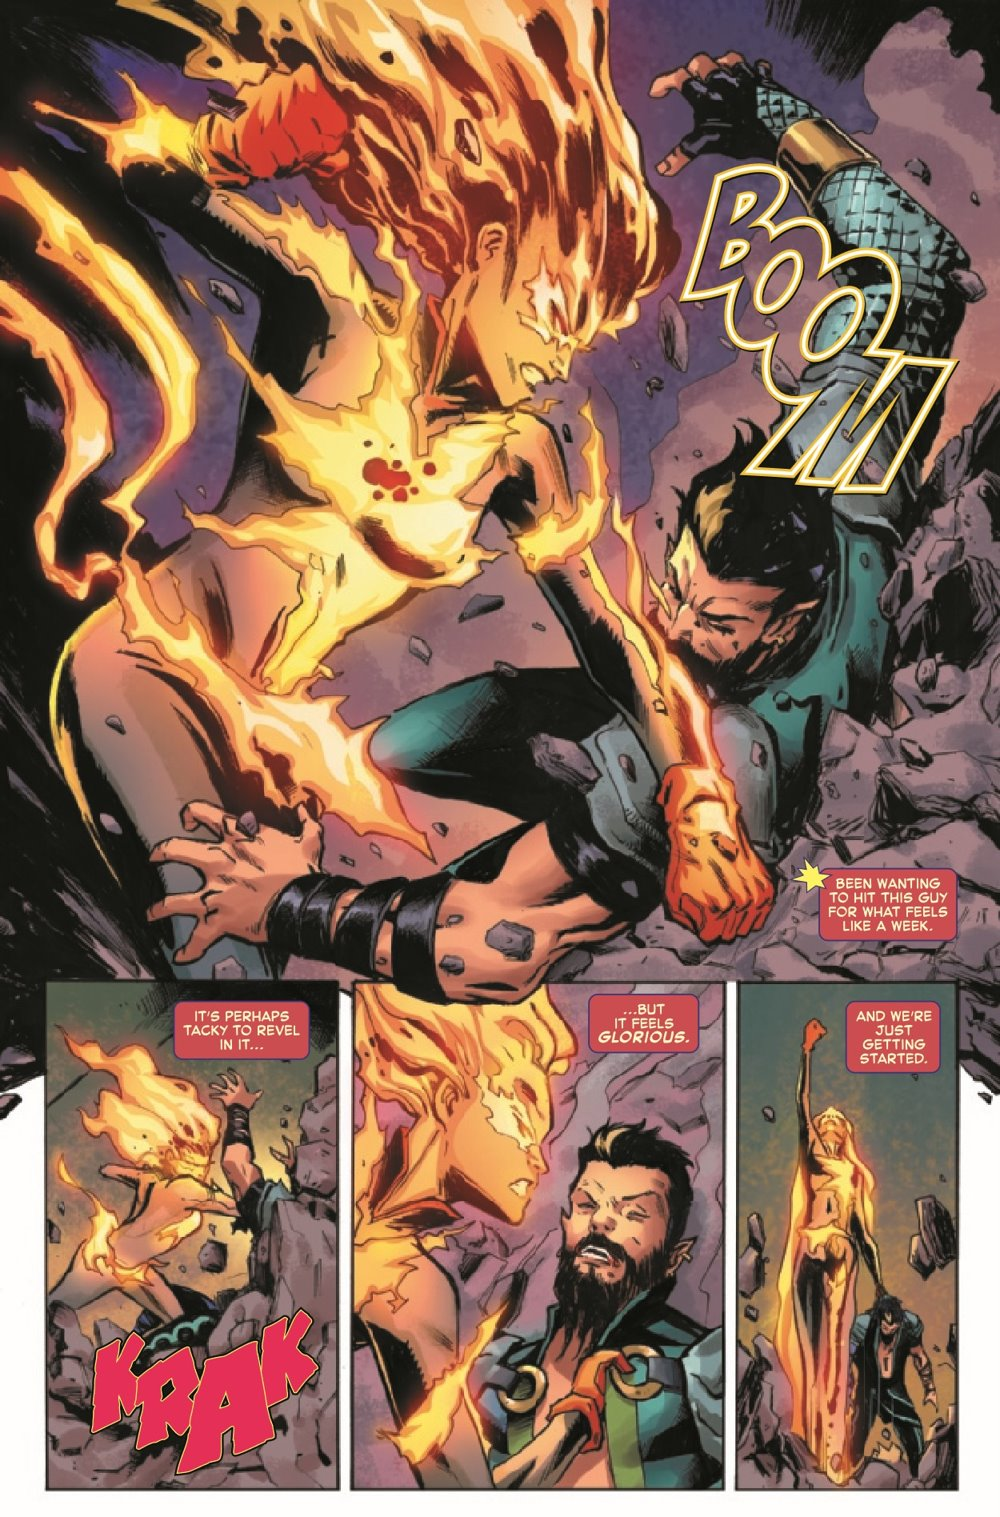 CAPMARV2019026_Preview-3 ComicList Previews: CAPTAIN MARVEL #26